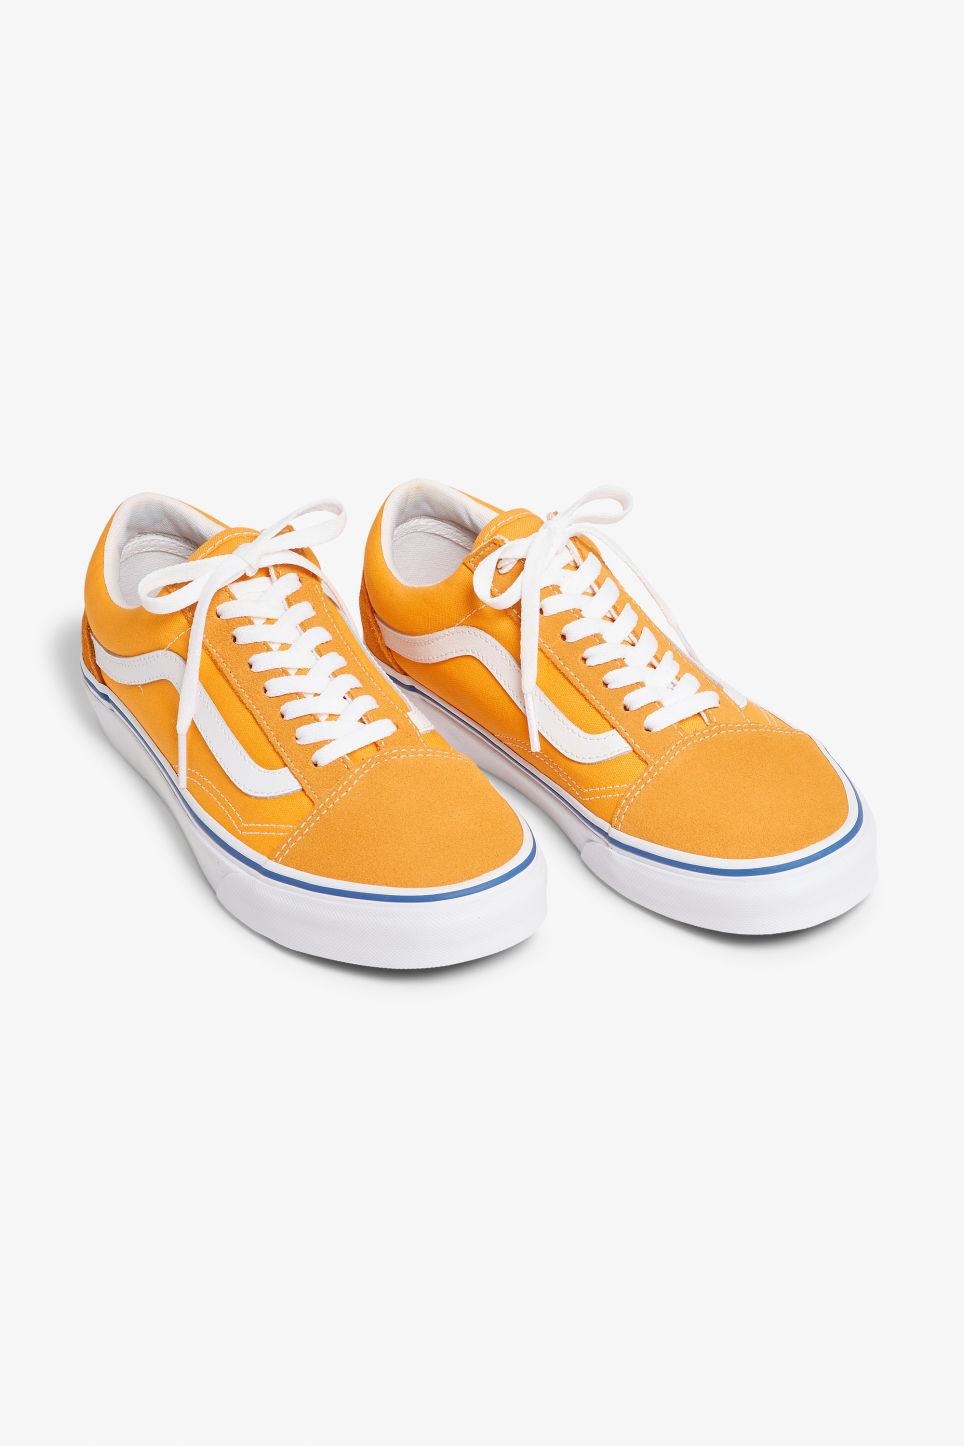 4488ba8a42c3cf Vans old skool - Zinnia and true white - Shoes - Monki